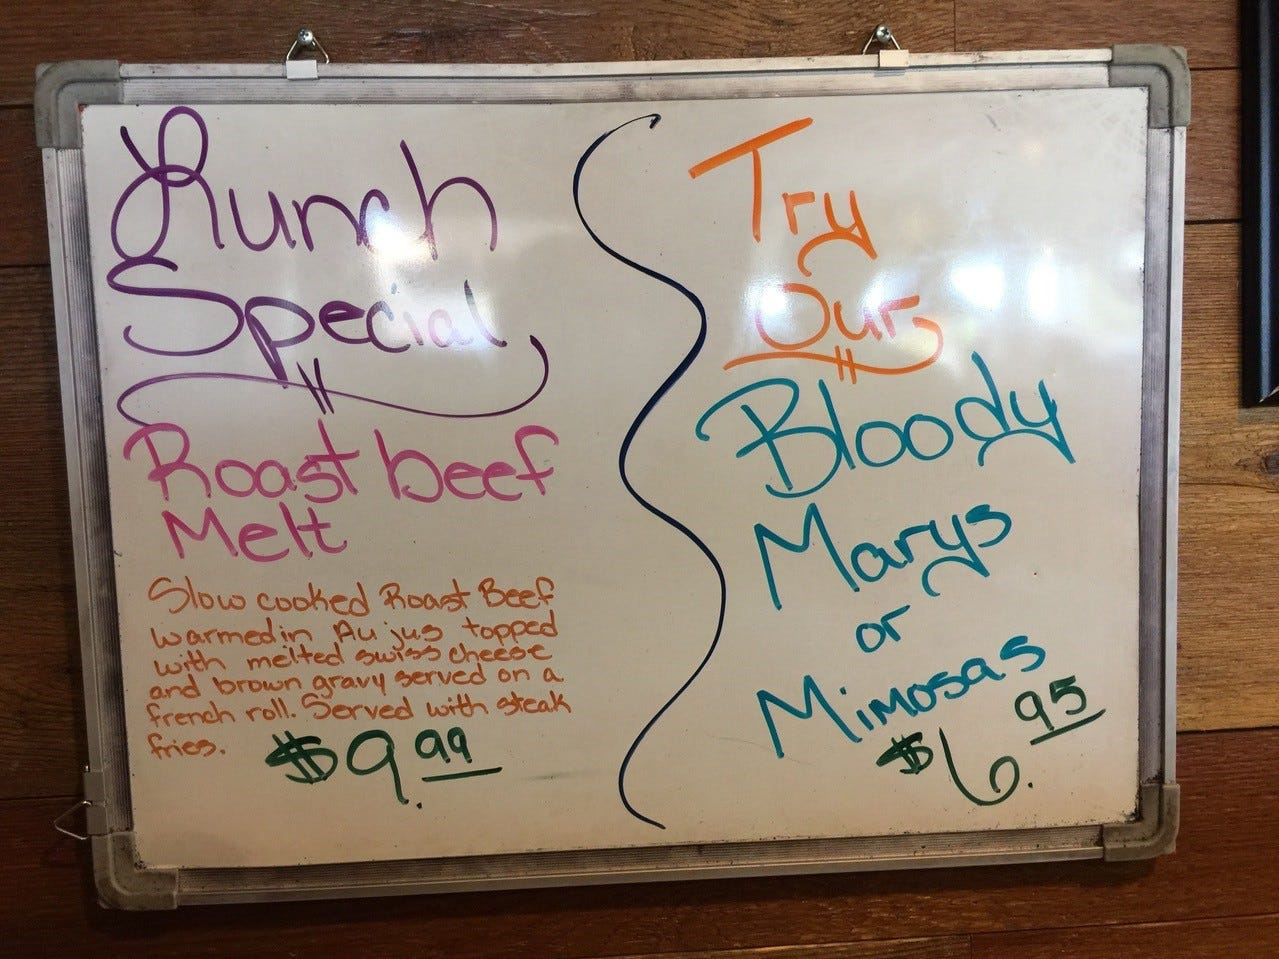 Always check the daily specials near the entrance to Jeff's California Cattle Company.